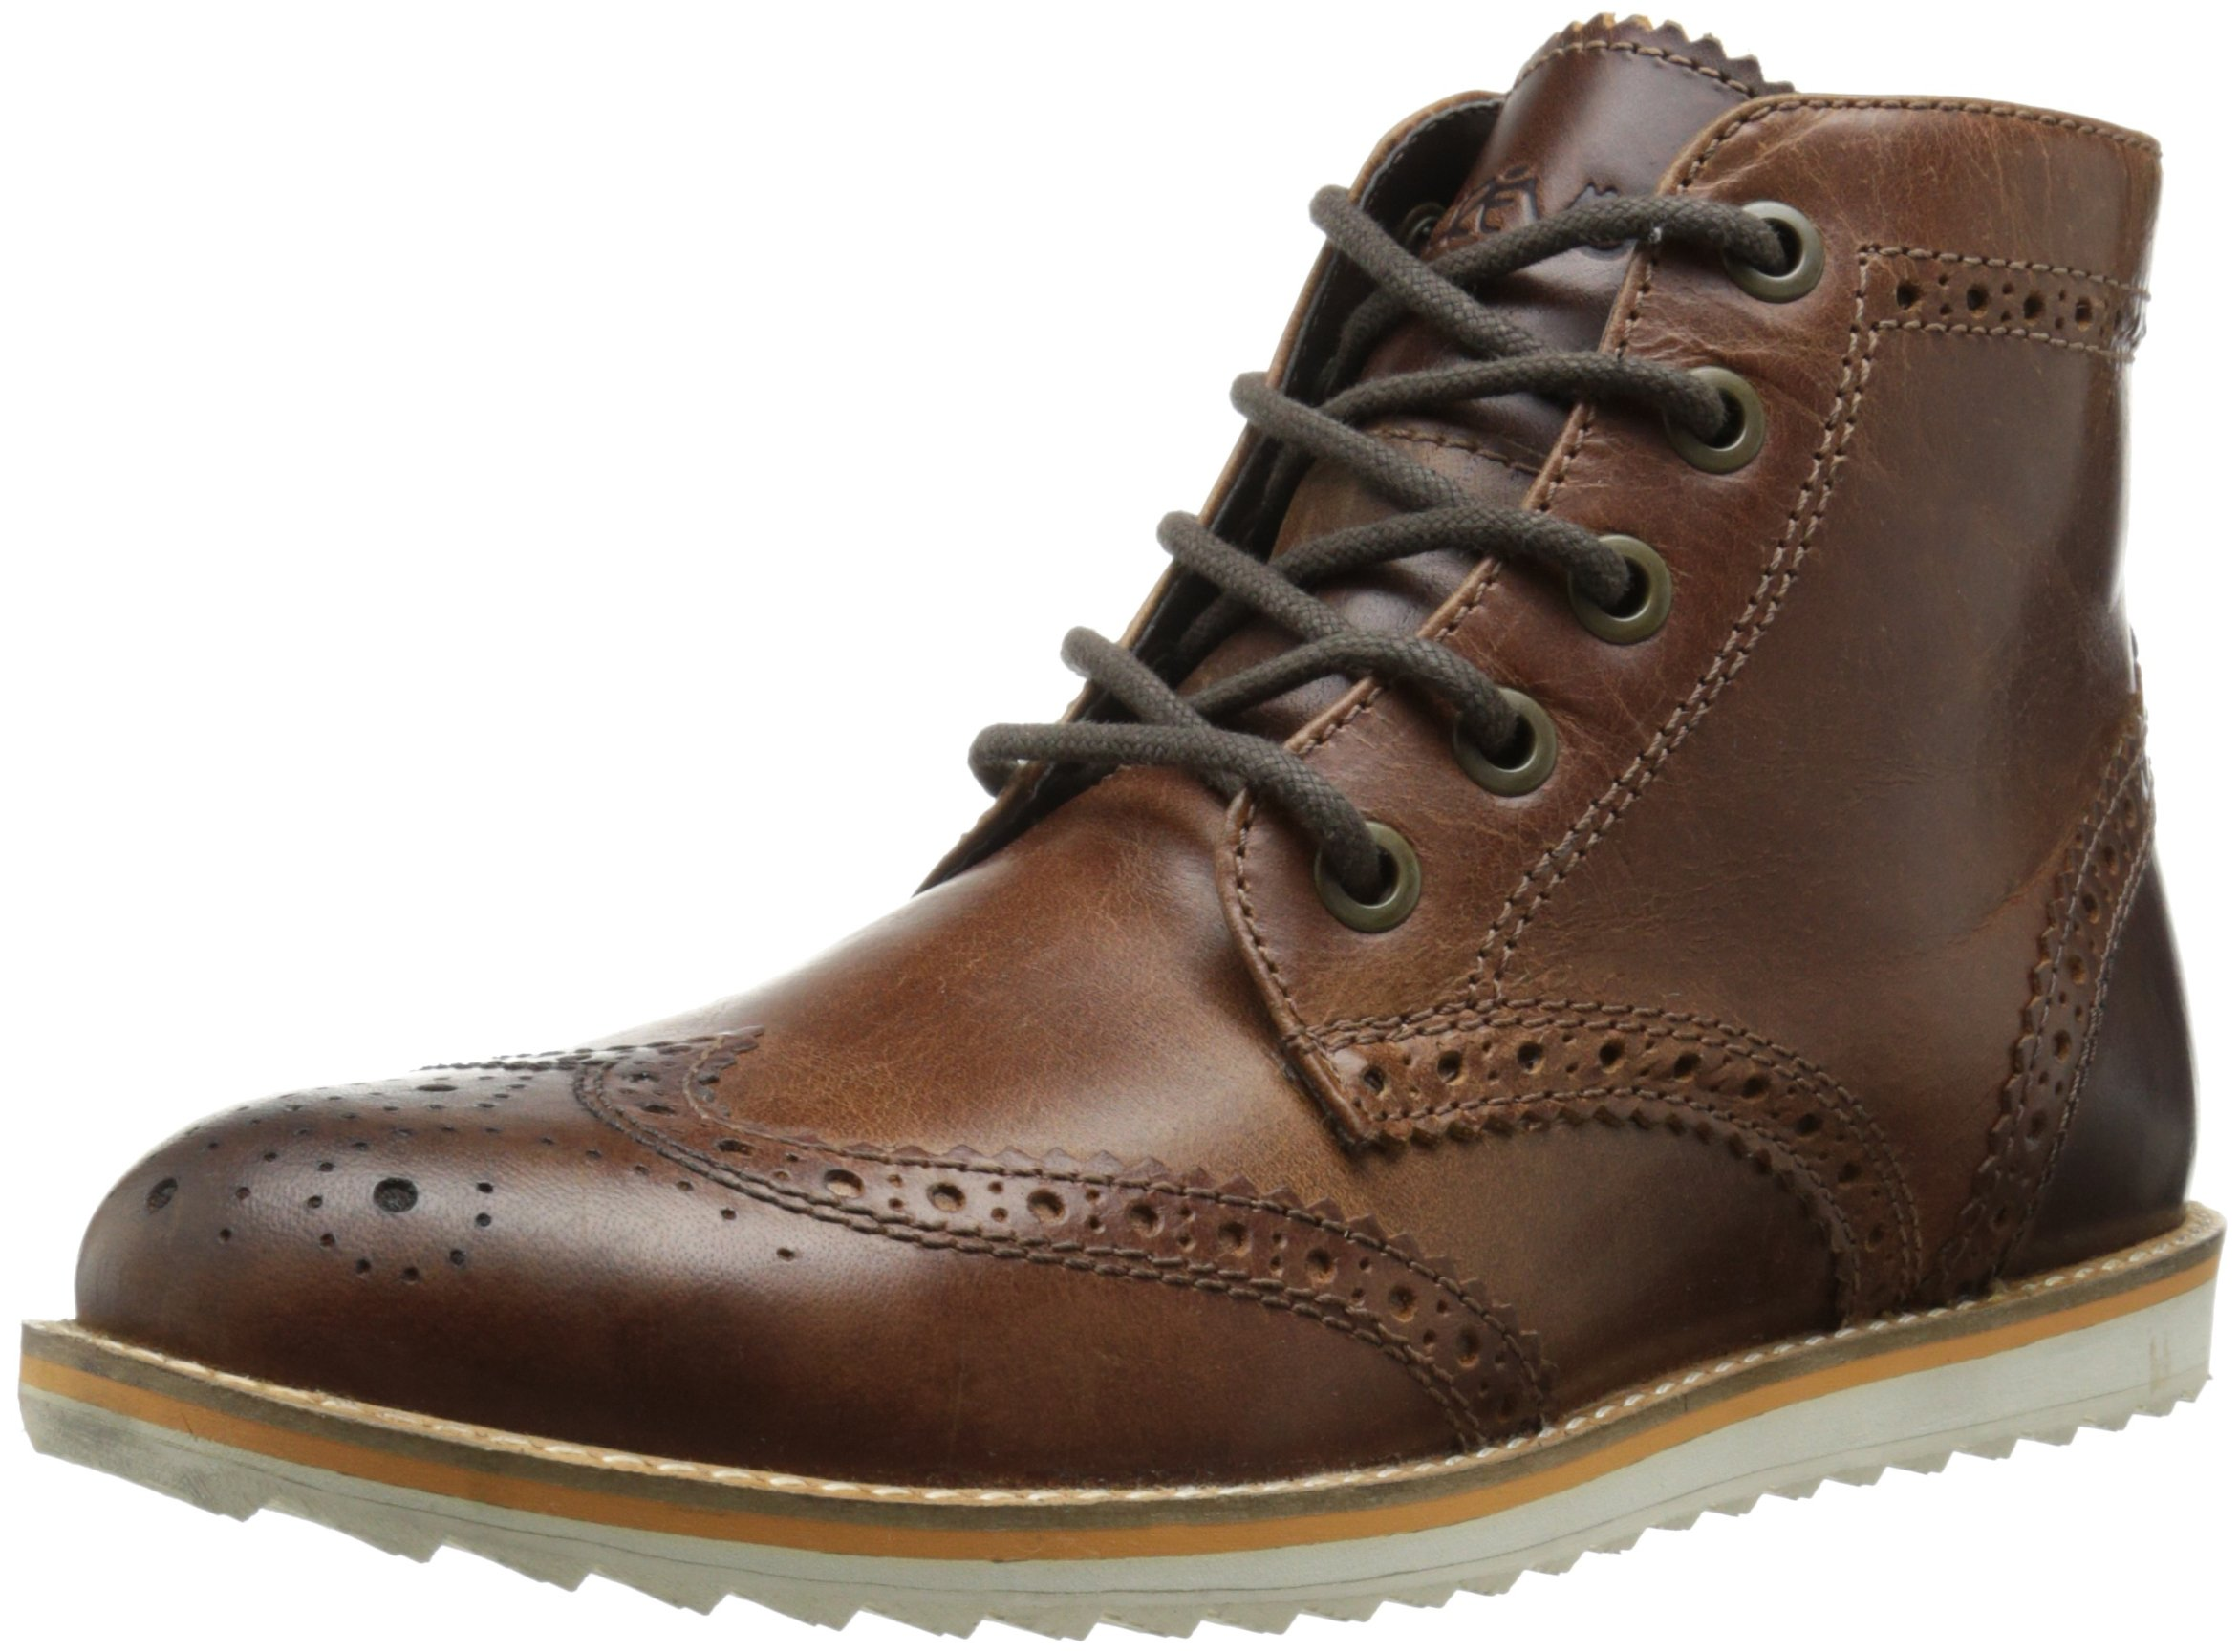 Crevo Men's Boardwalk Wing Tip Boot, Brown Leather, 11 M US